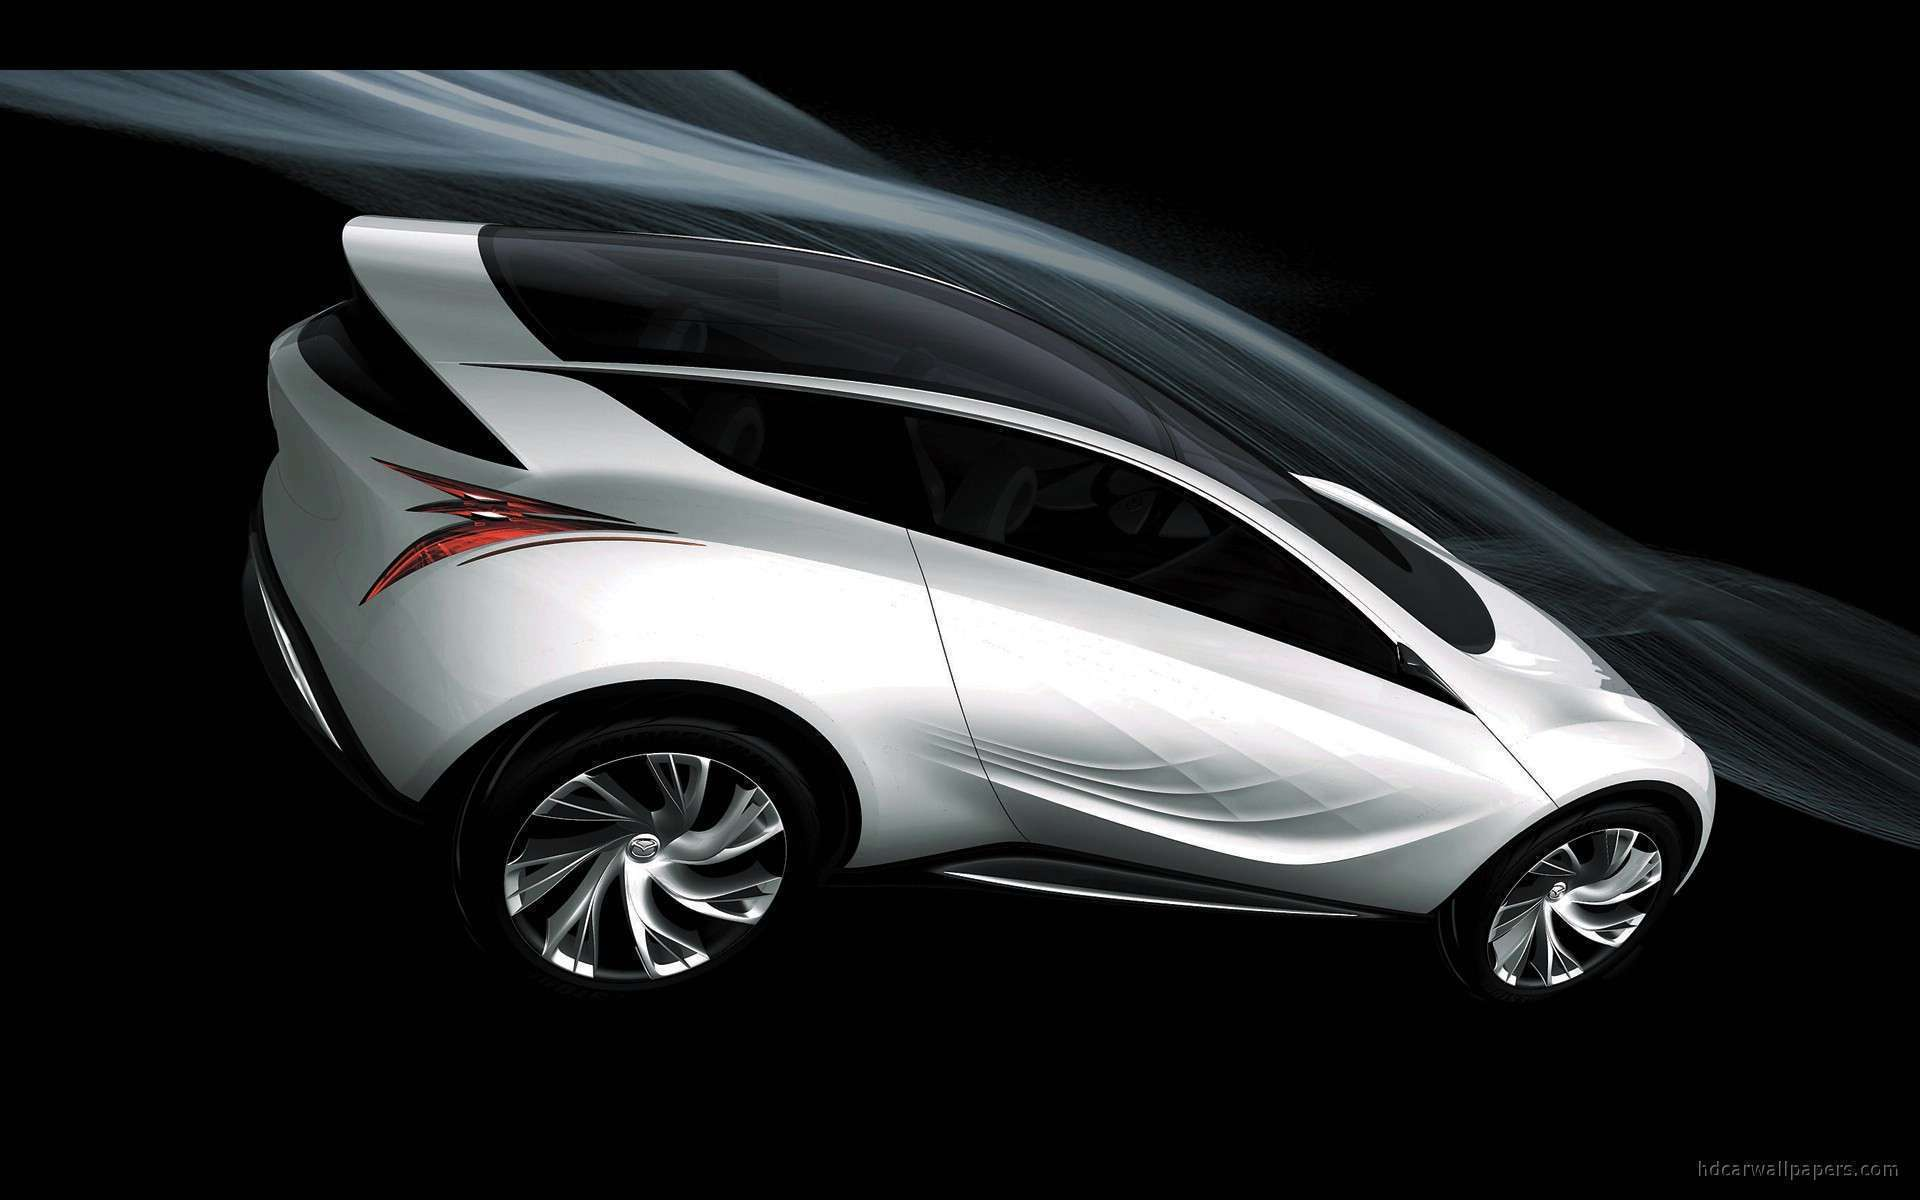 Mazda Kazamai Concept Hd Wallpapers